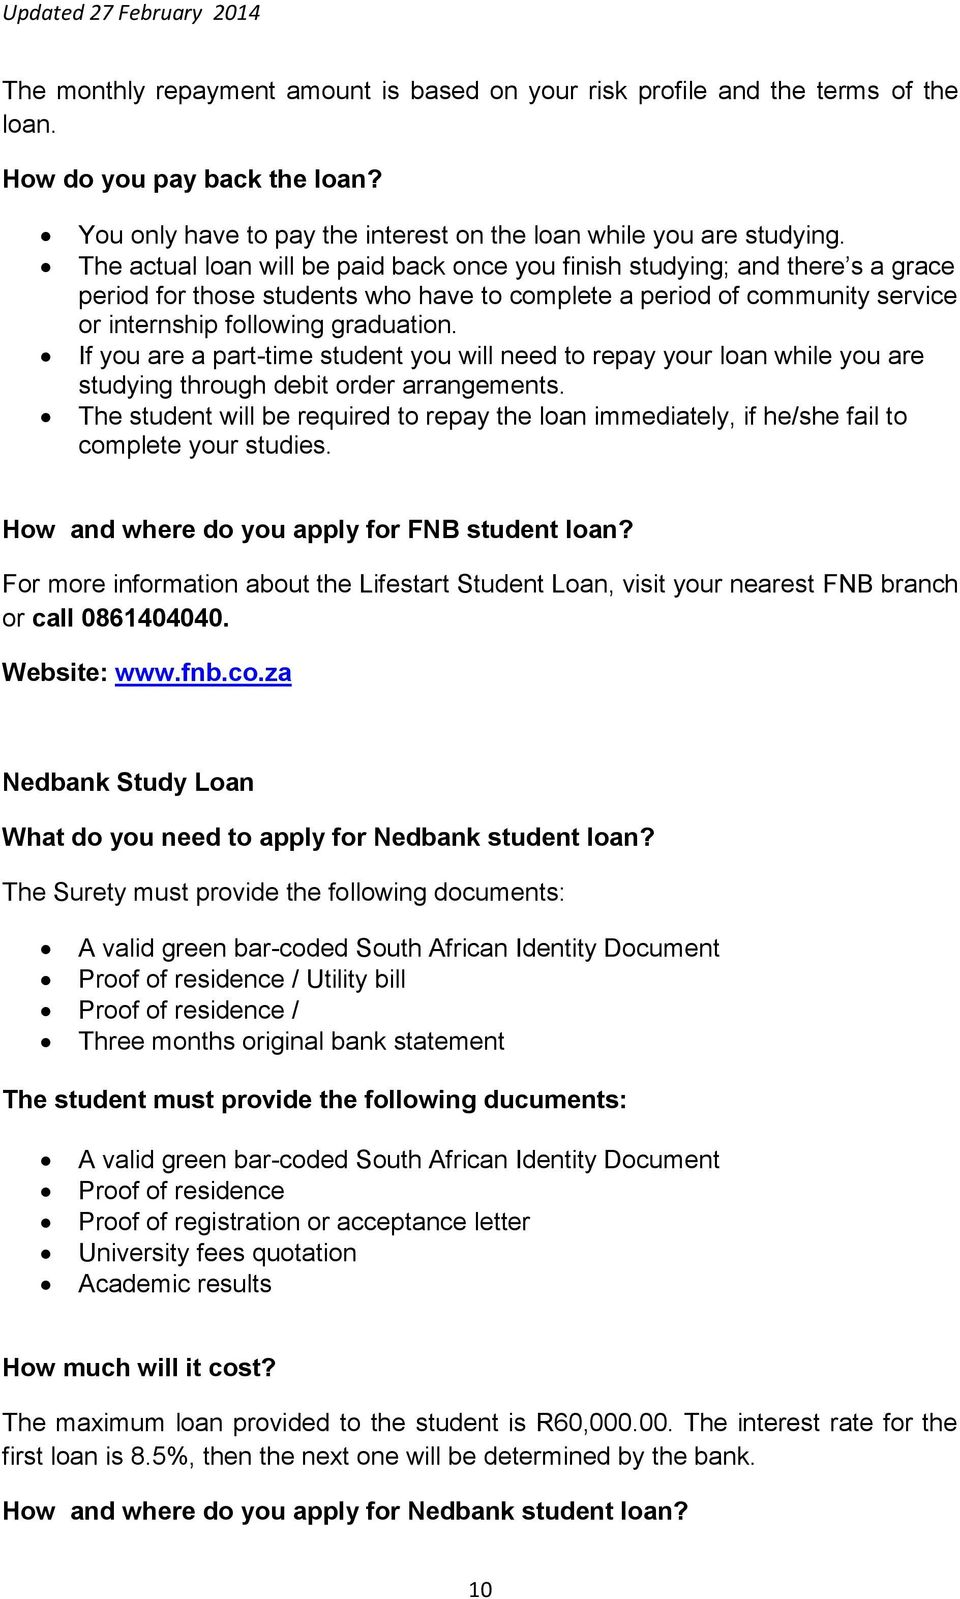 If you are a part-time student you will need to repay your loan while you are studying through debit order arrangements.